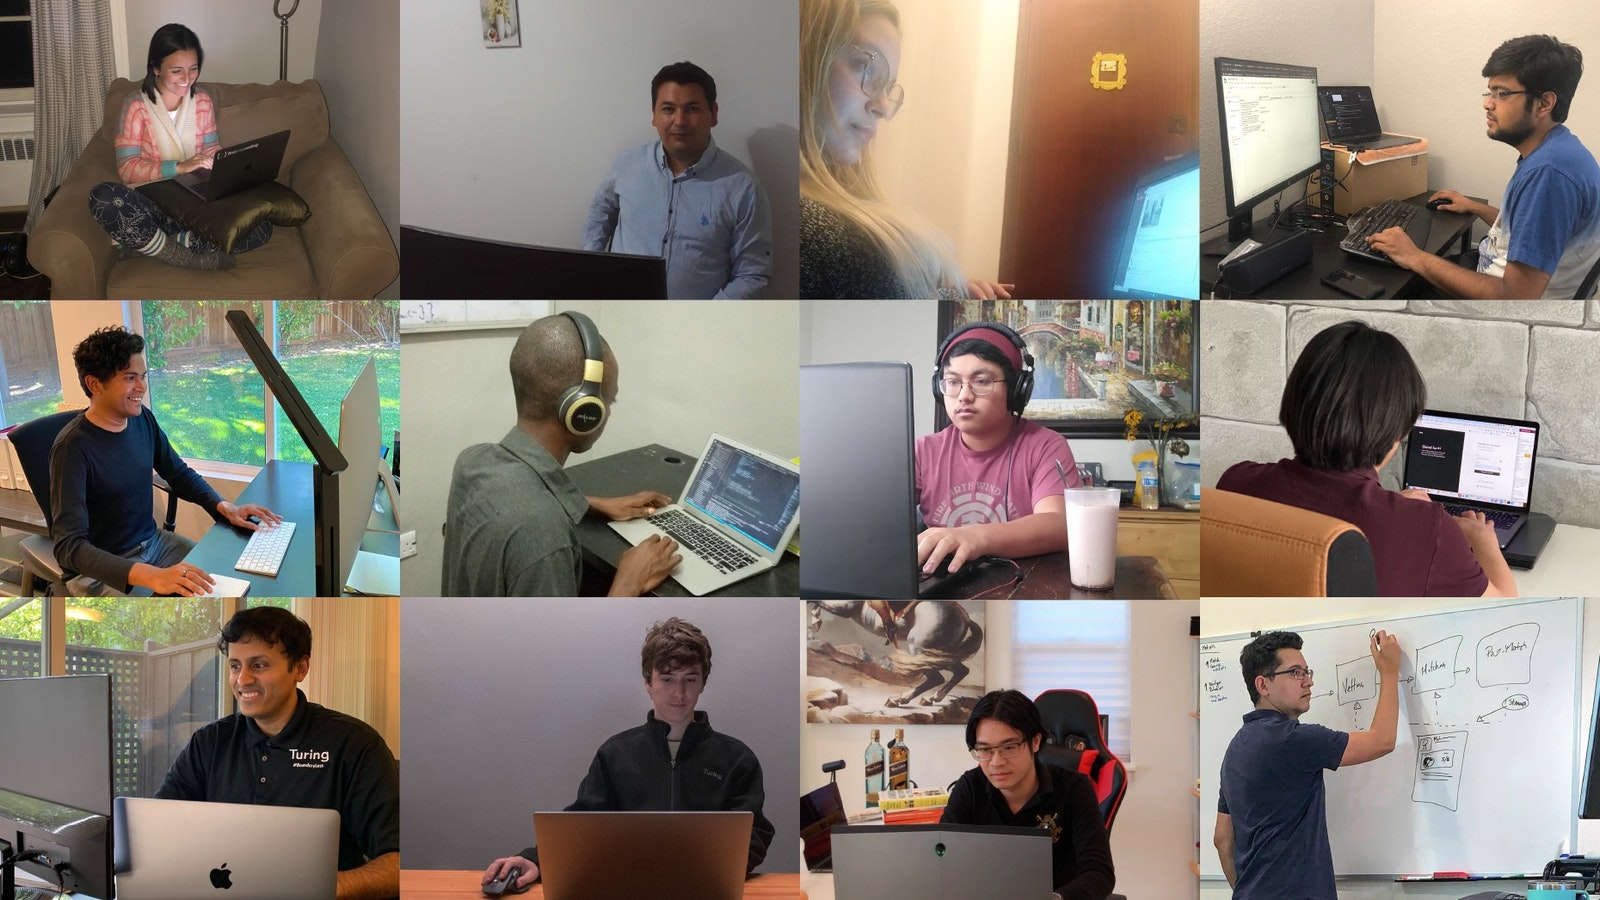 Turing engineers and staff. Images courtesy of Turing.